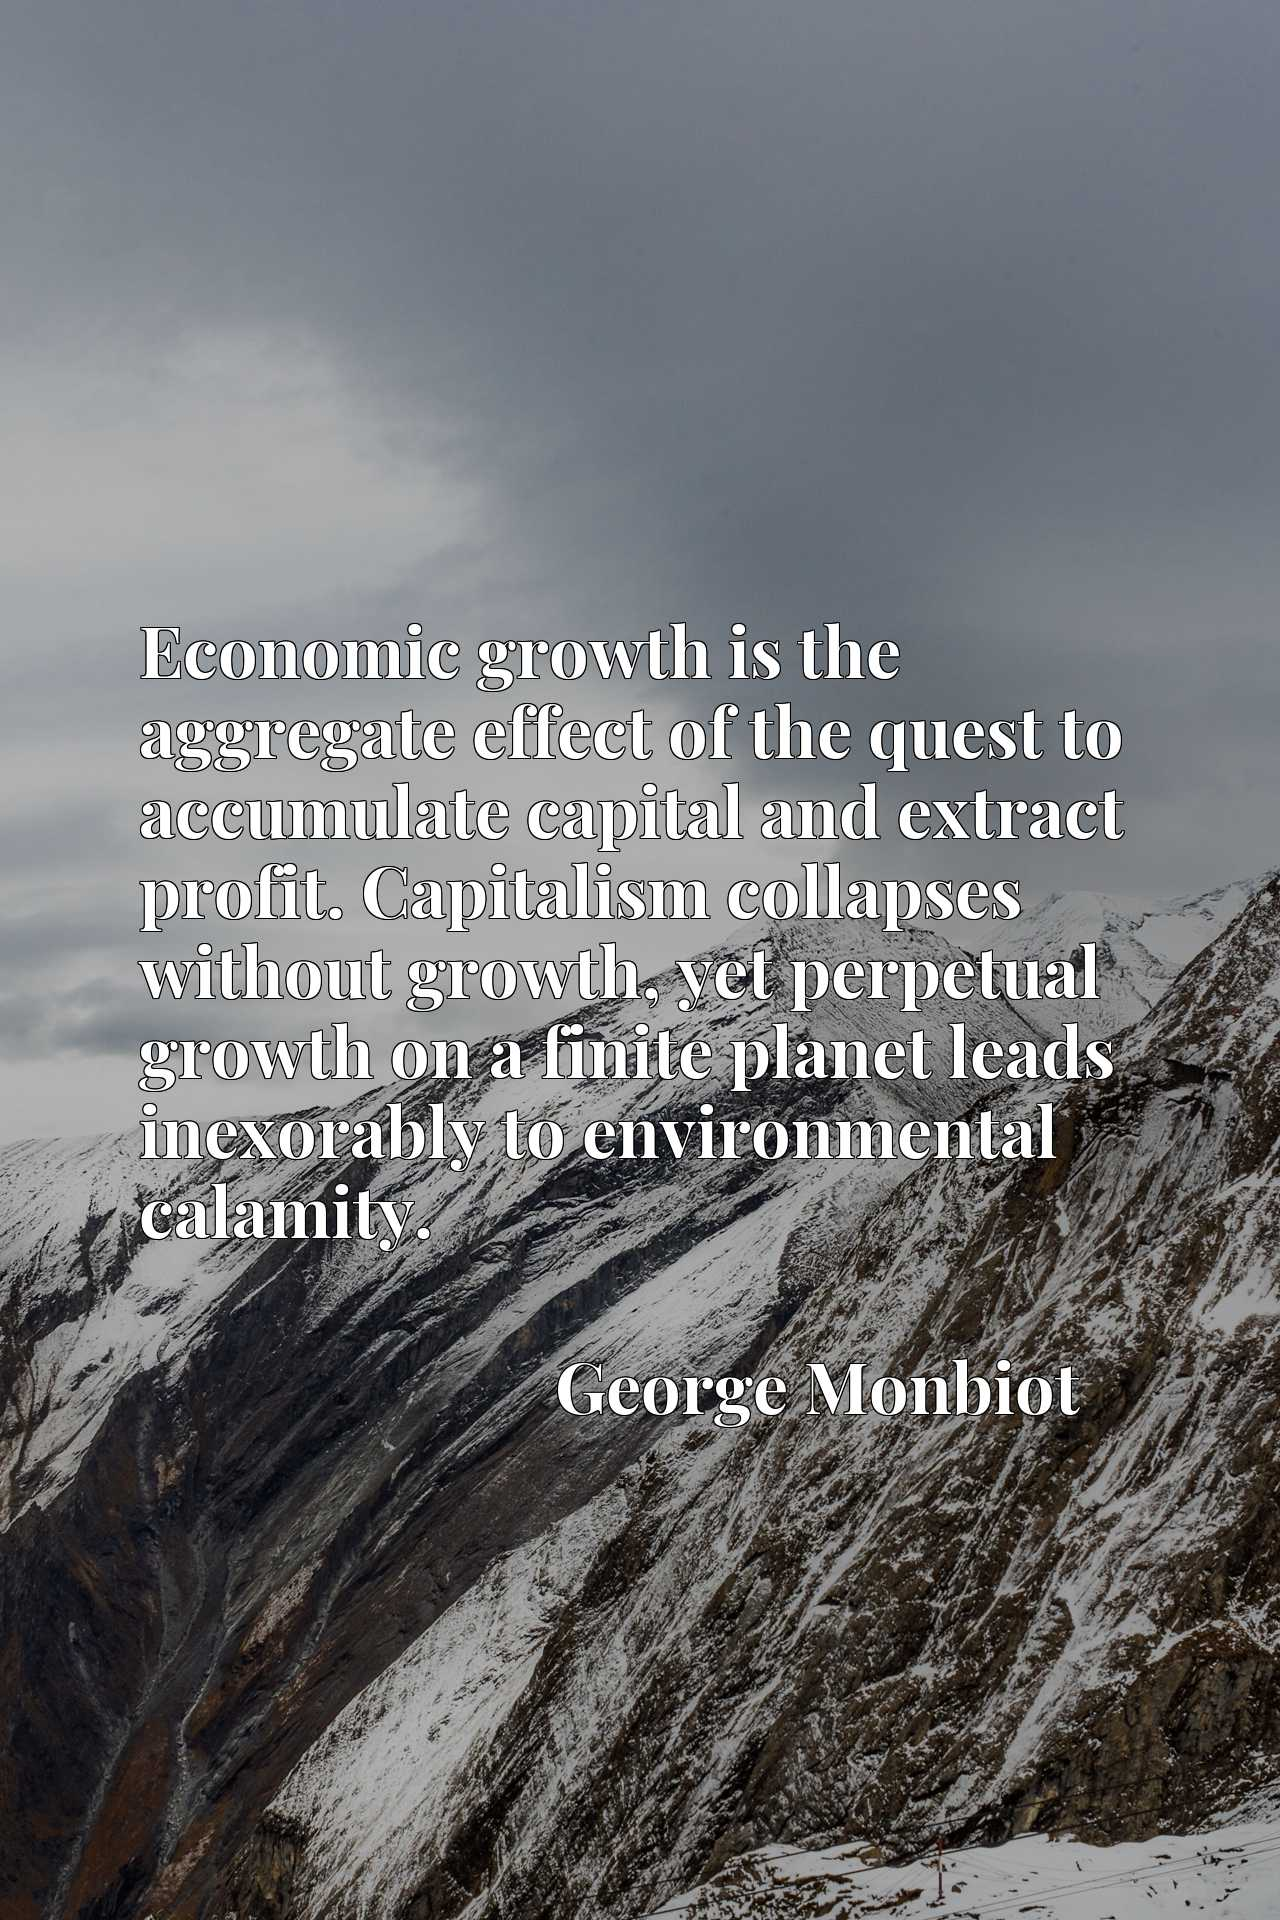 Economic growth is the aggregate effect of the quest to accumulate capital and extract profit. Capitalism collapses without growth, yet perpetual growth on a finite planet leads inexorably to environmental calamity.